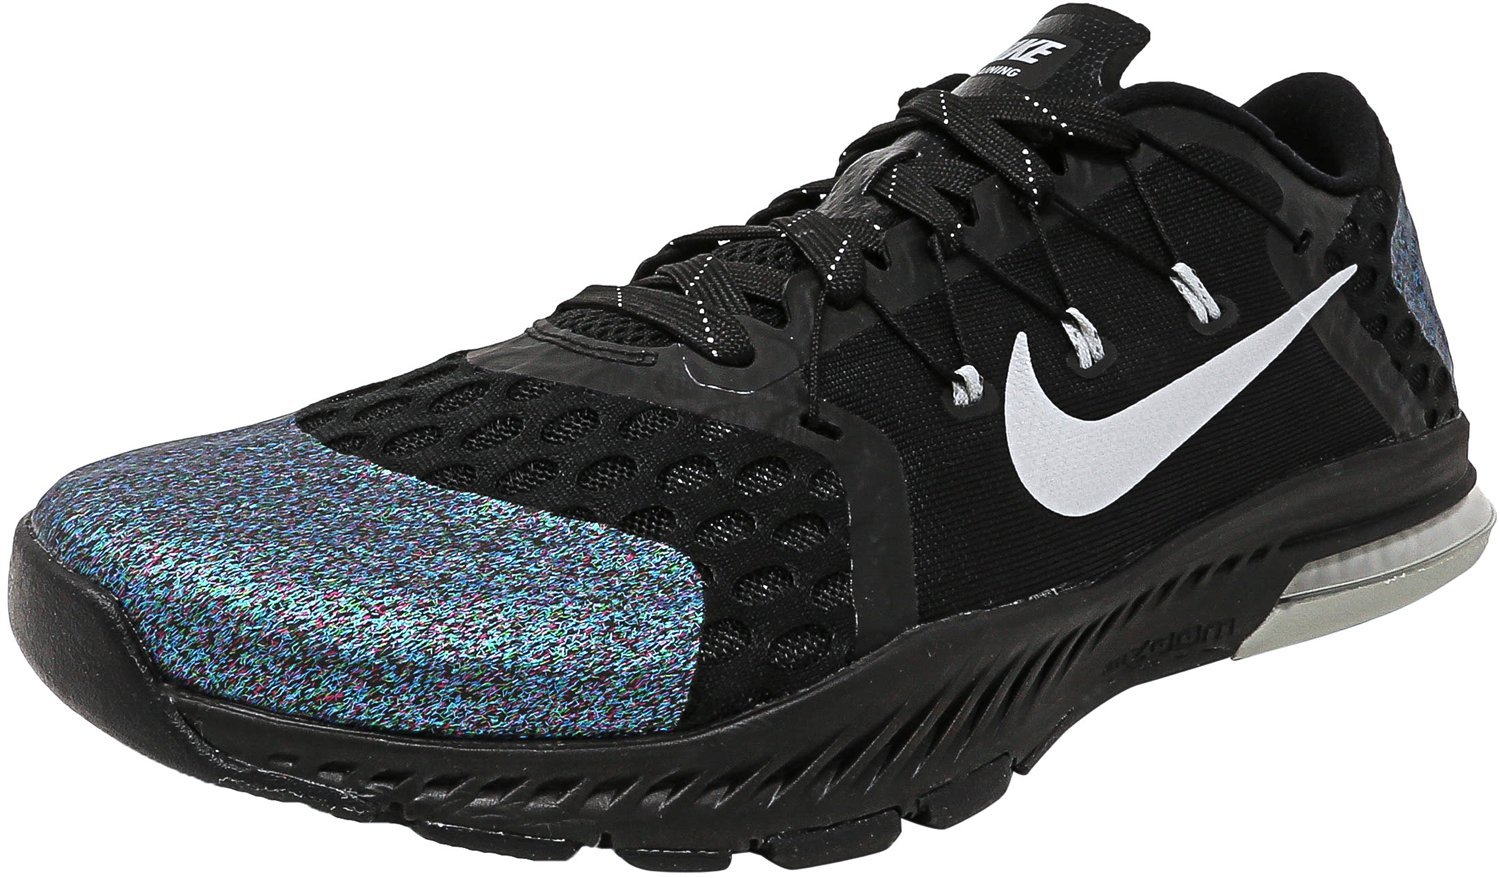 NIKE Air Zoom Train Complete Mens Running Trainers 882119 Sneakers Shoes B073NF63NC 9 D(M) US|Black / Metallic Silver